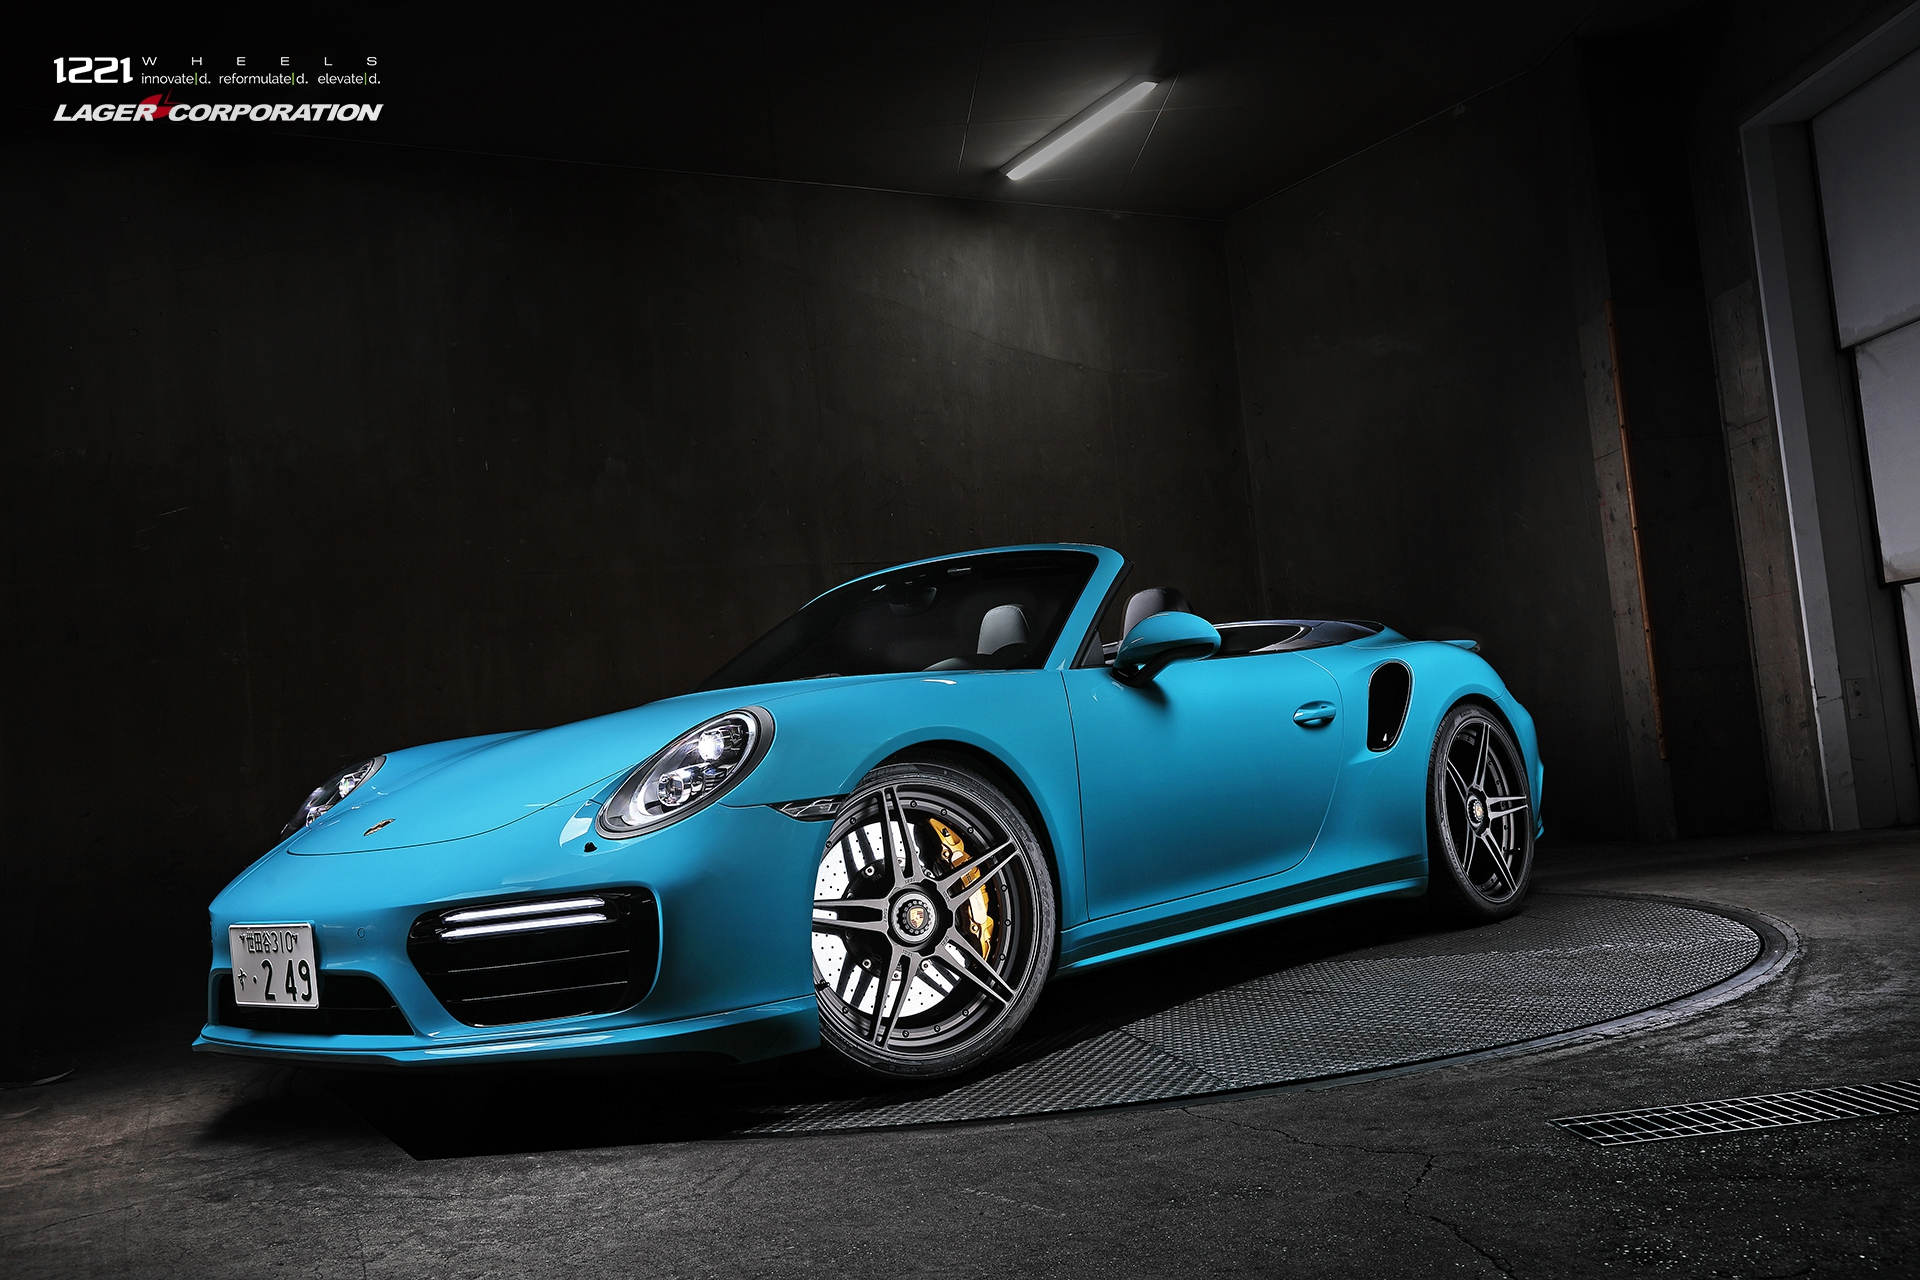 Porsche 911 Turbo S Carrera forged concave wheels